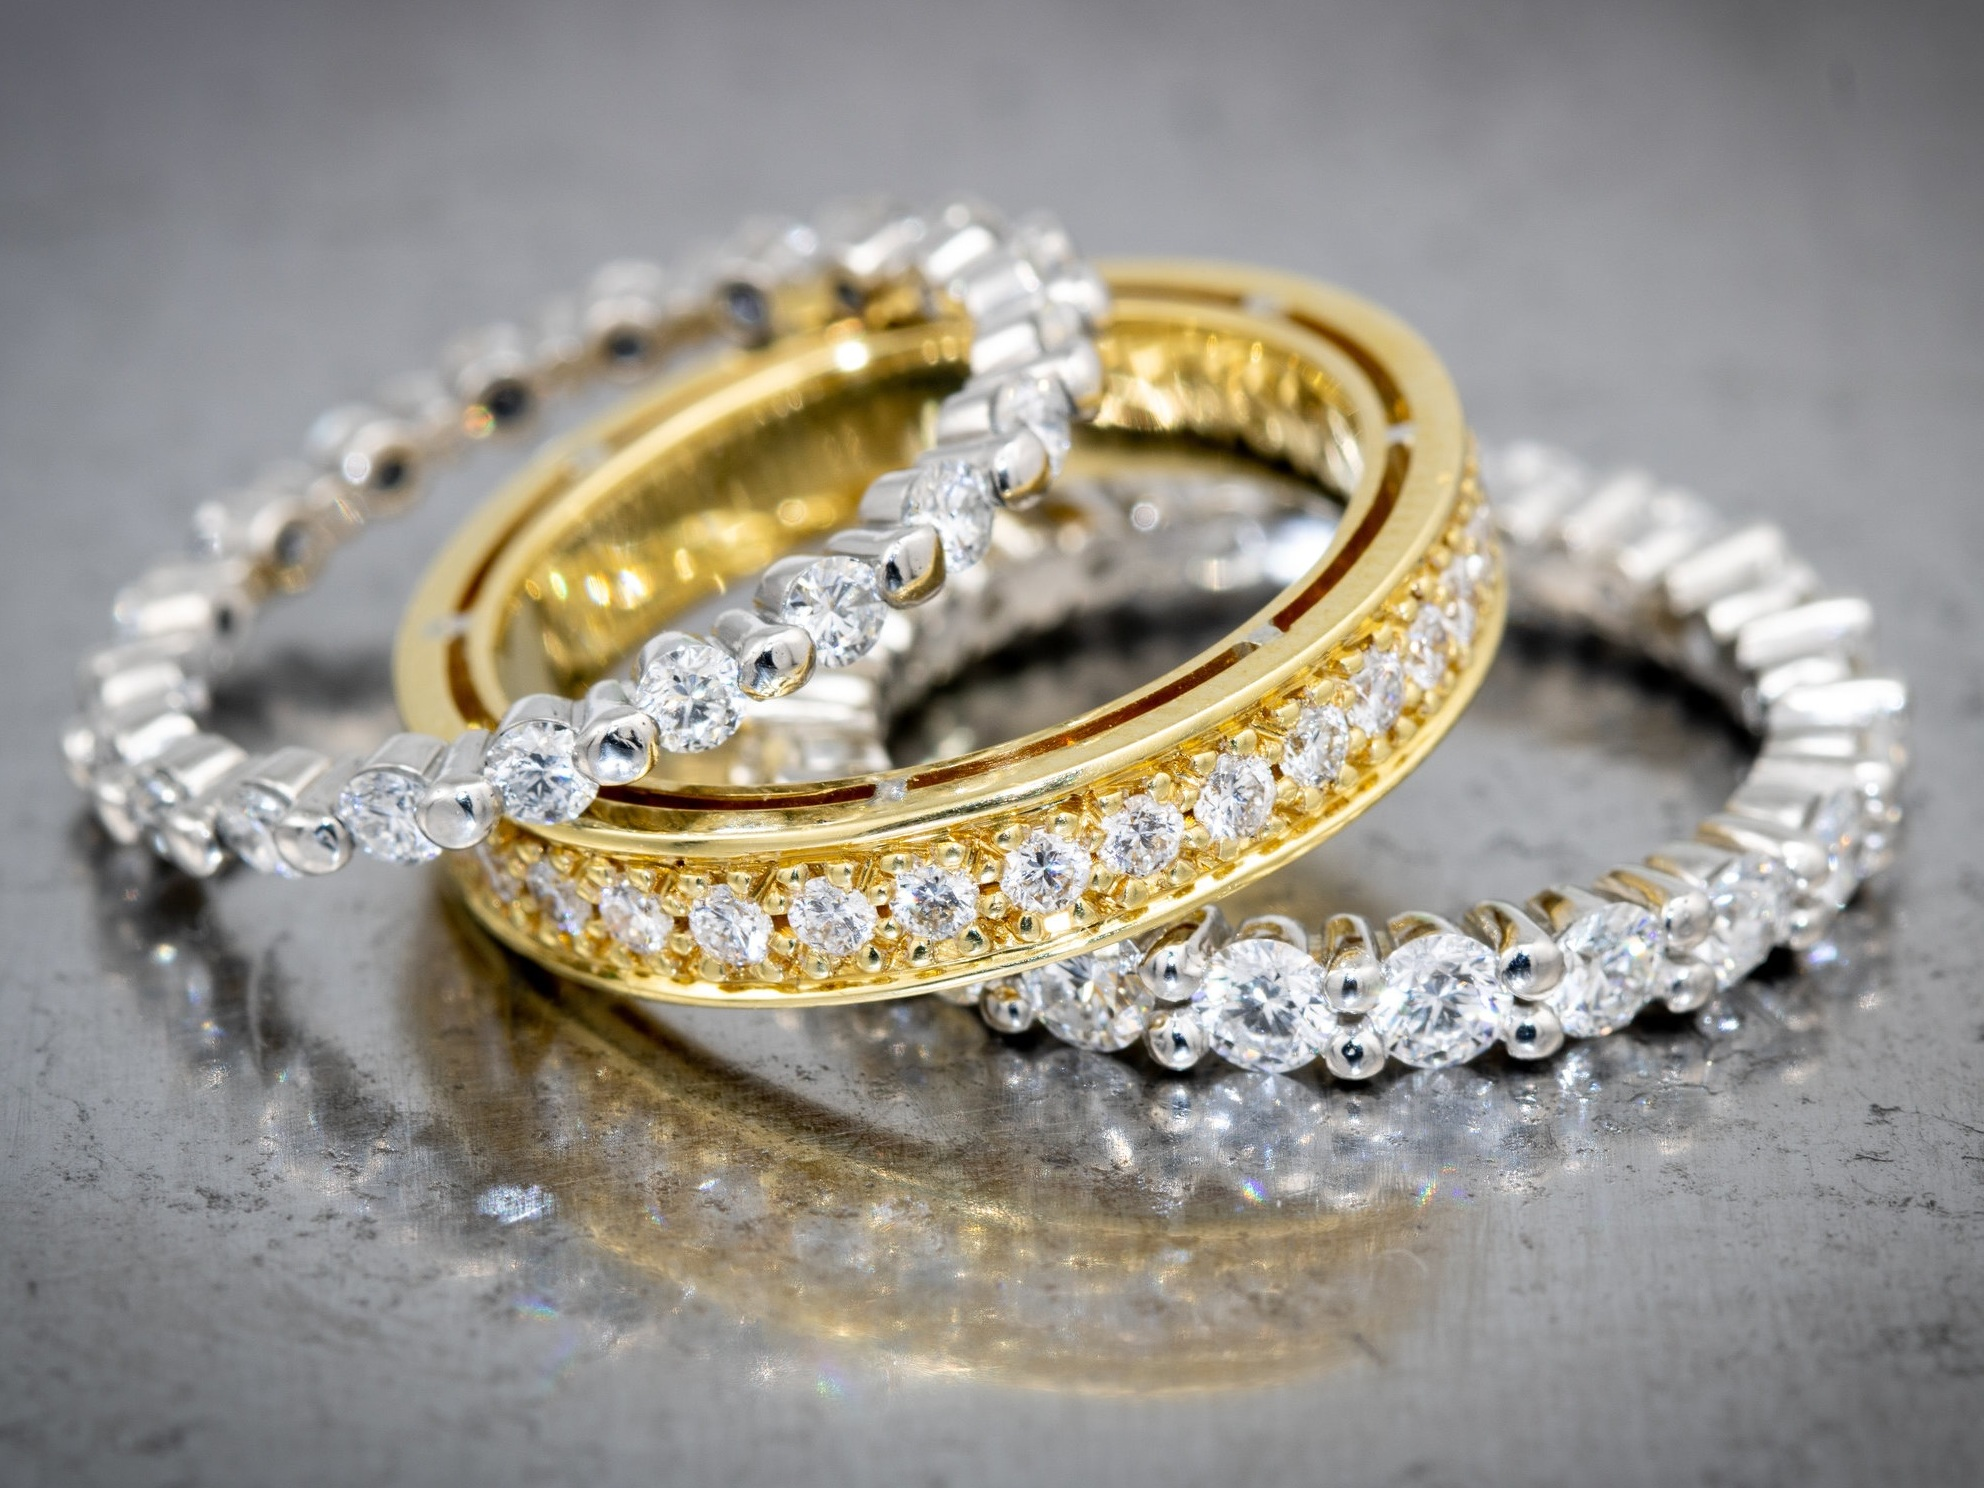 Rings True Custom Jewelry Create Your Original Wedding Rings With A